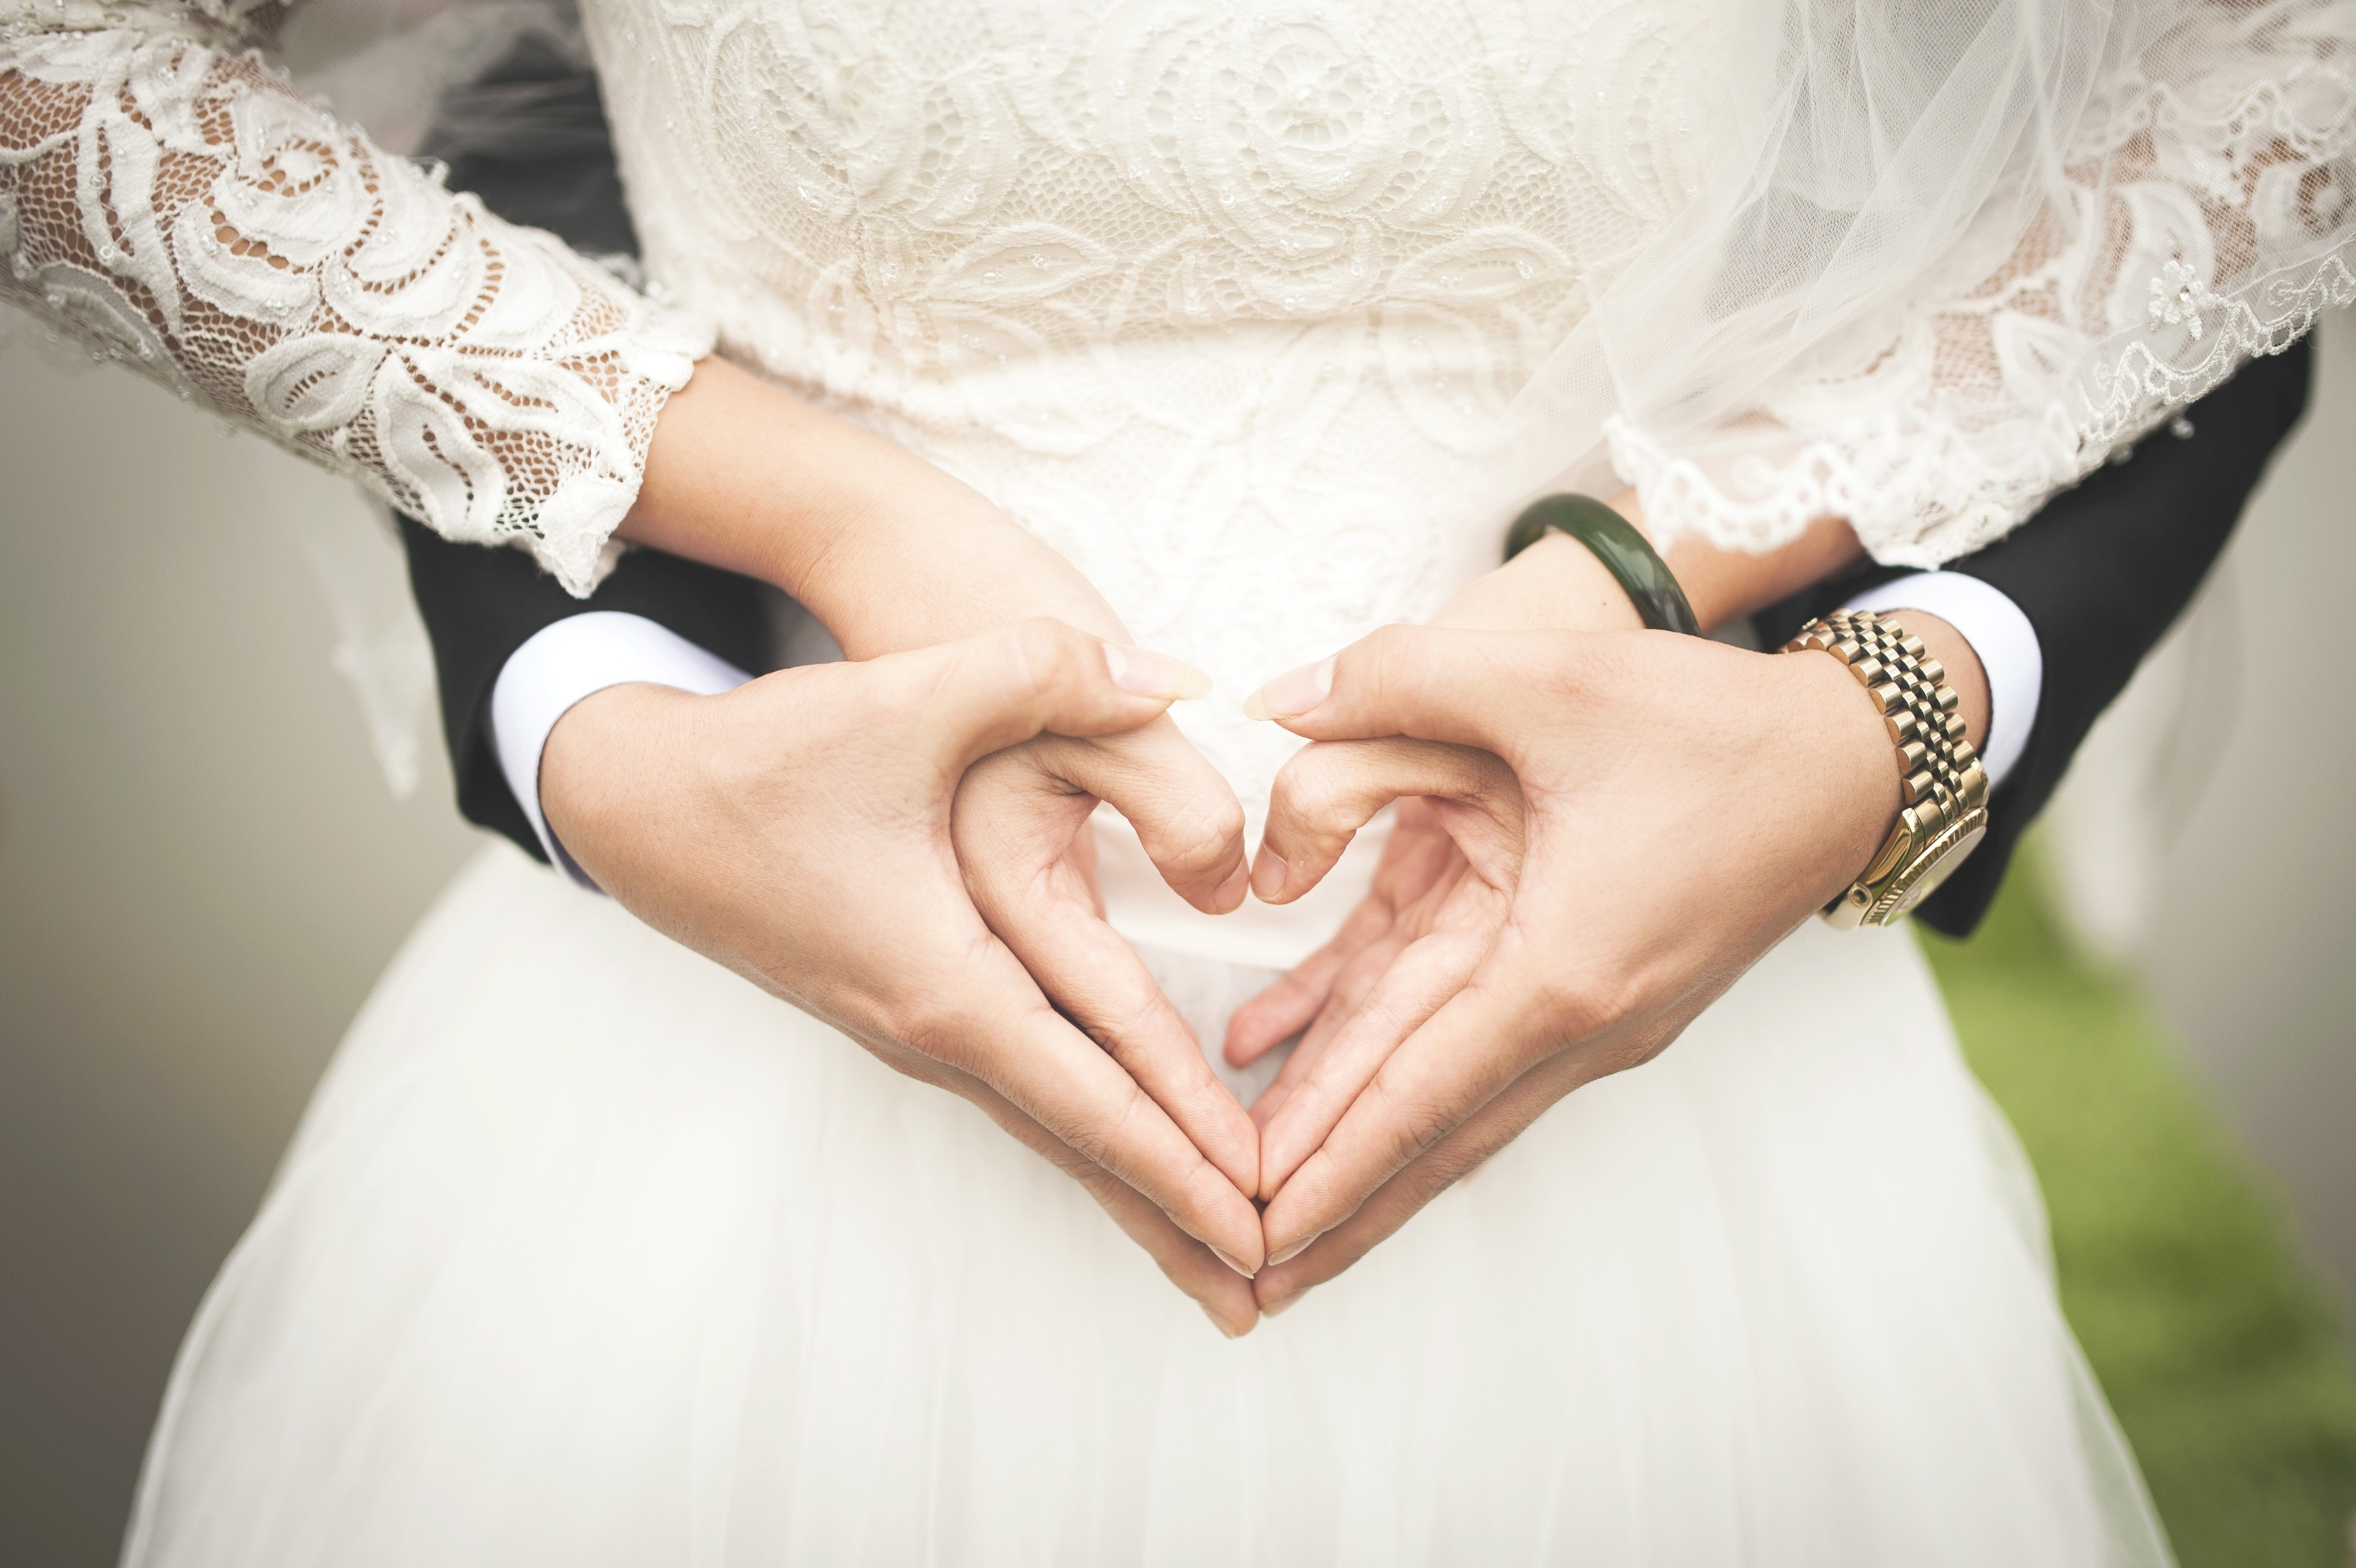 Ask Mrs. Merrick… How Do I Find Mr. Right?